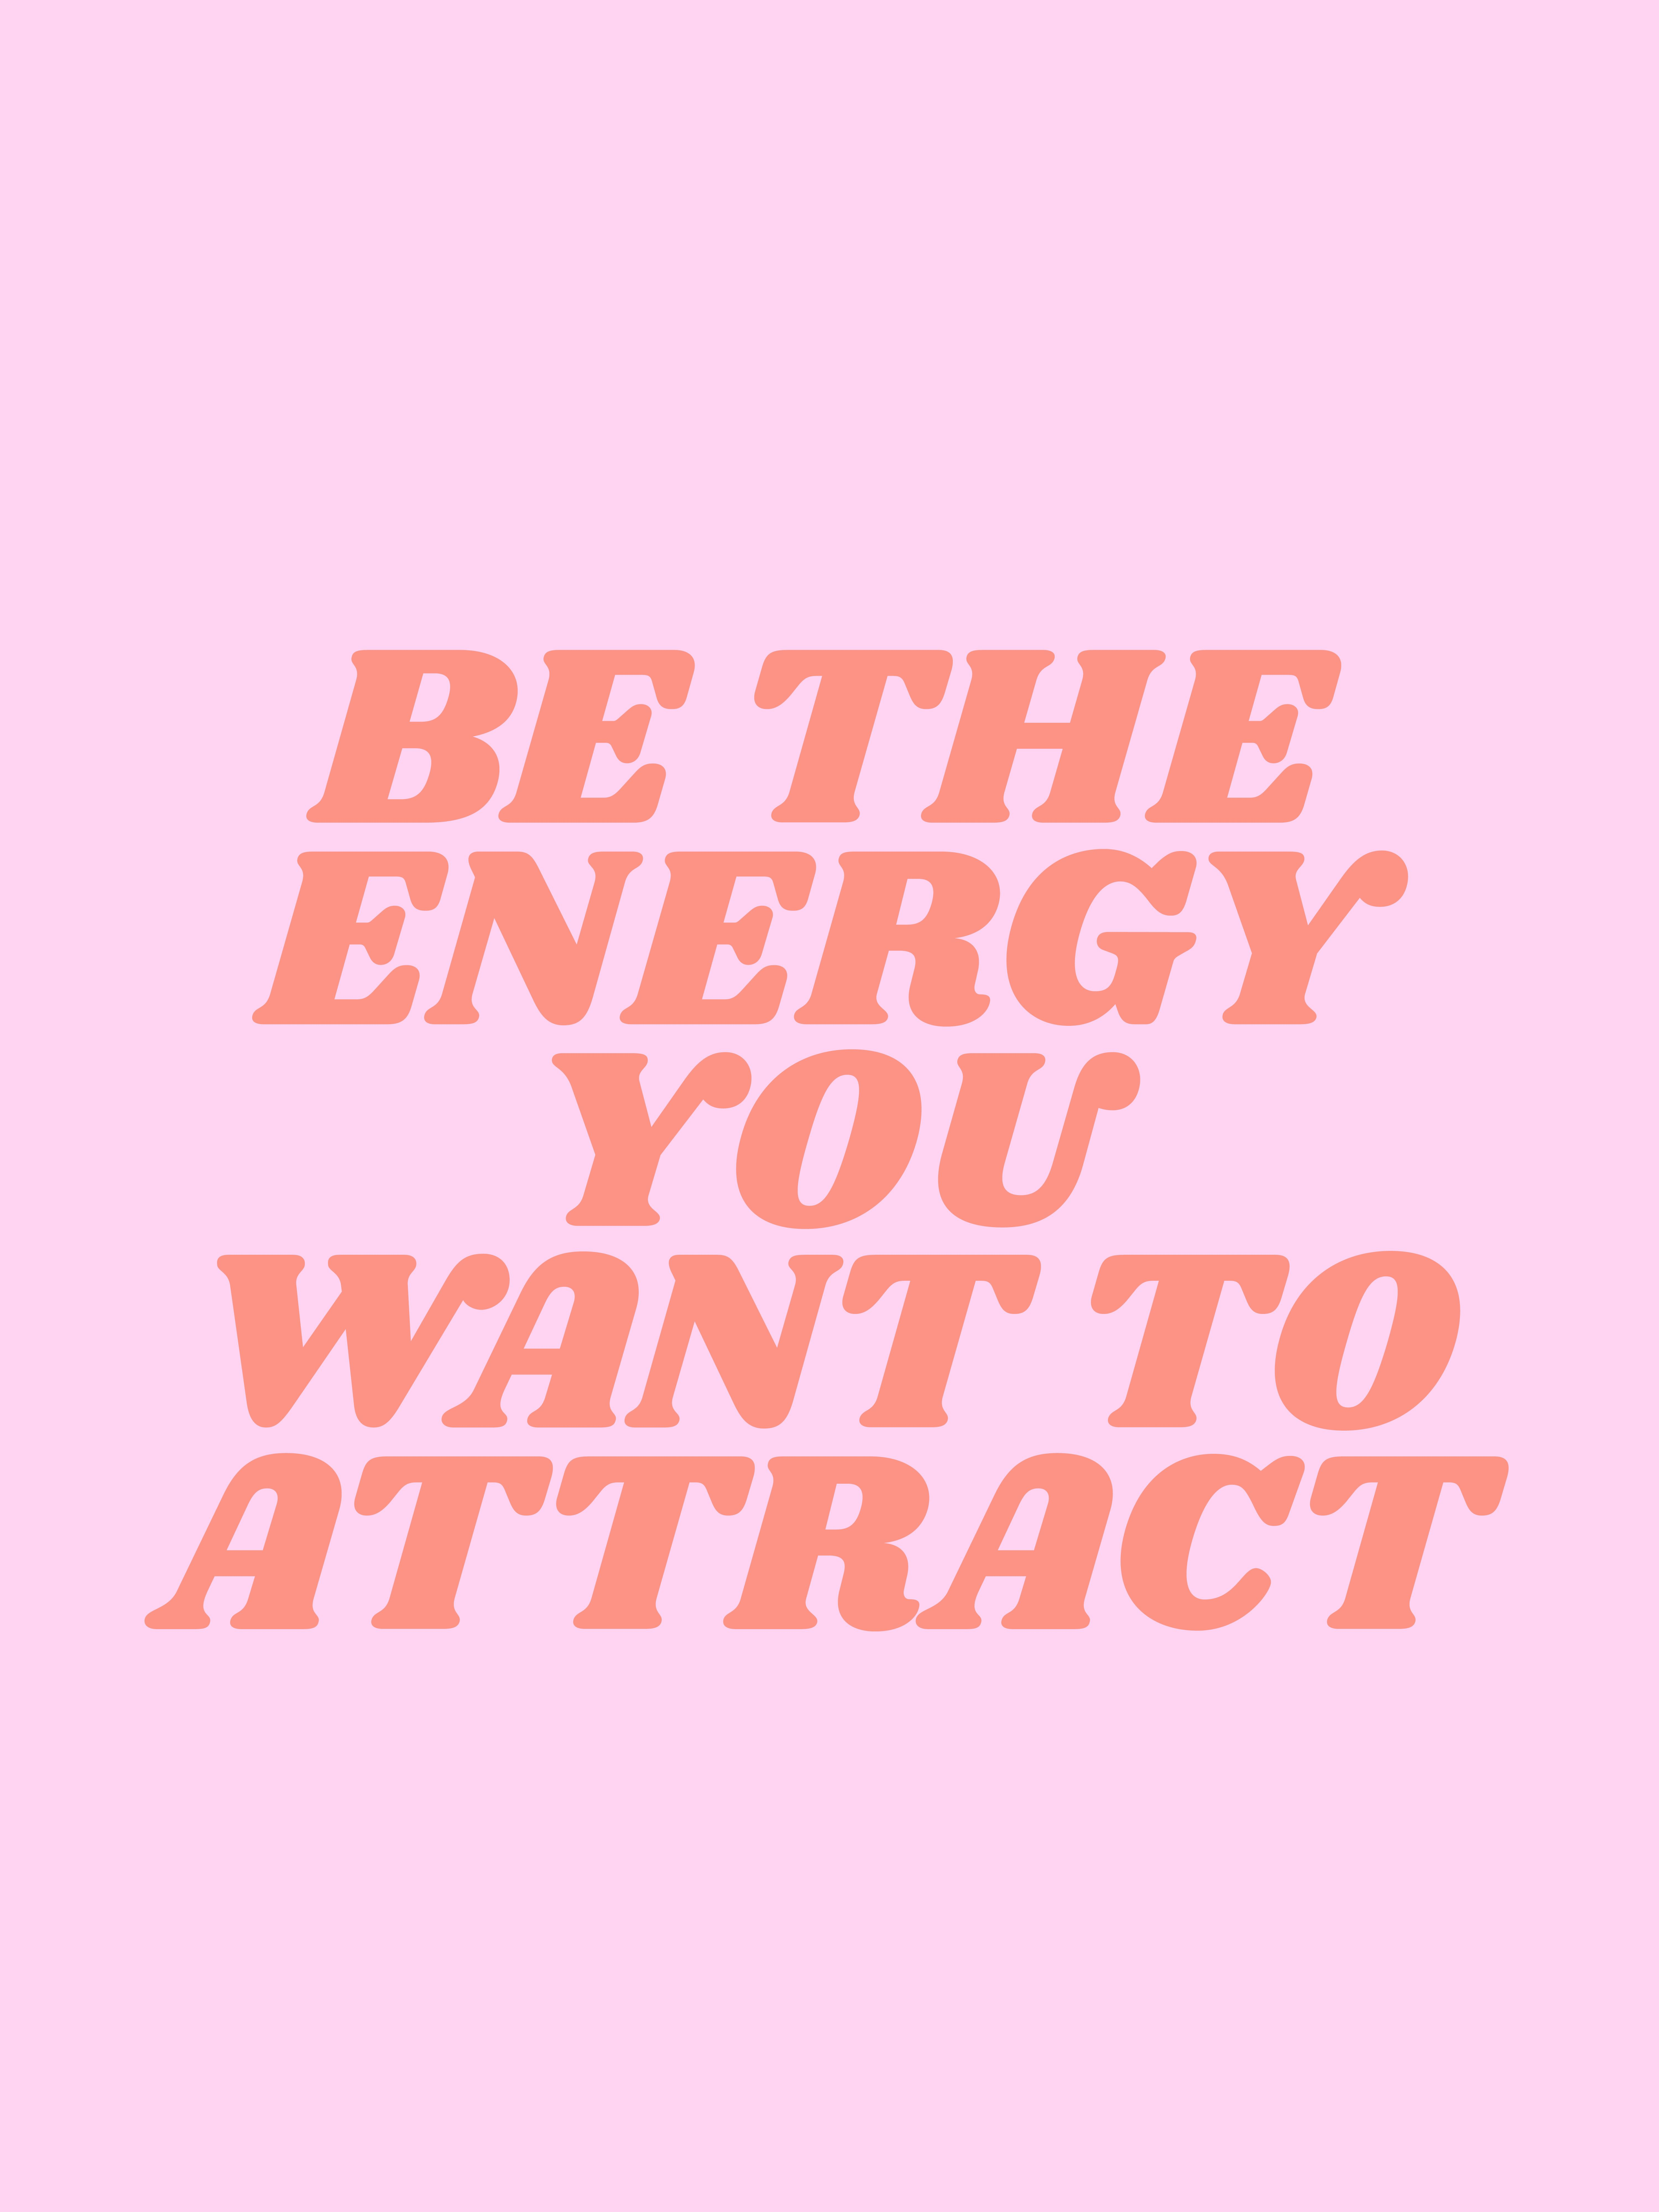 be the energy you want to attract | society6.com/t